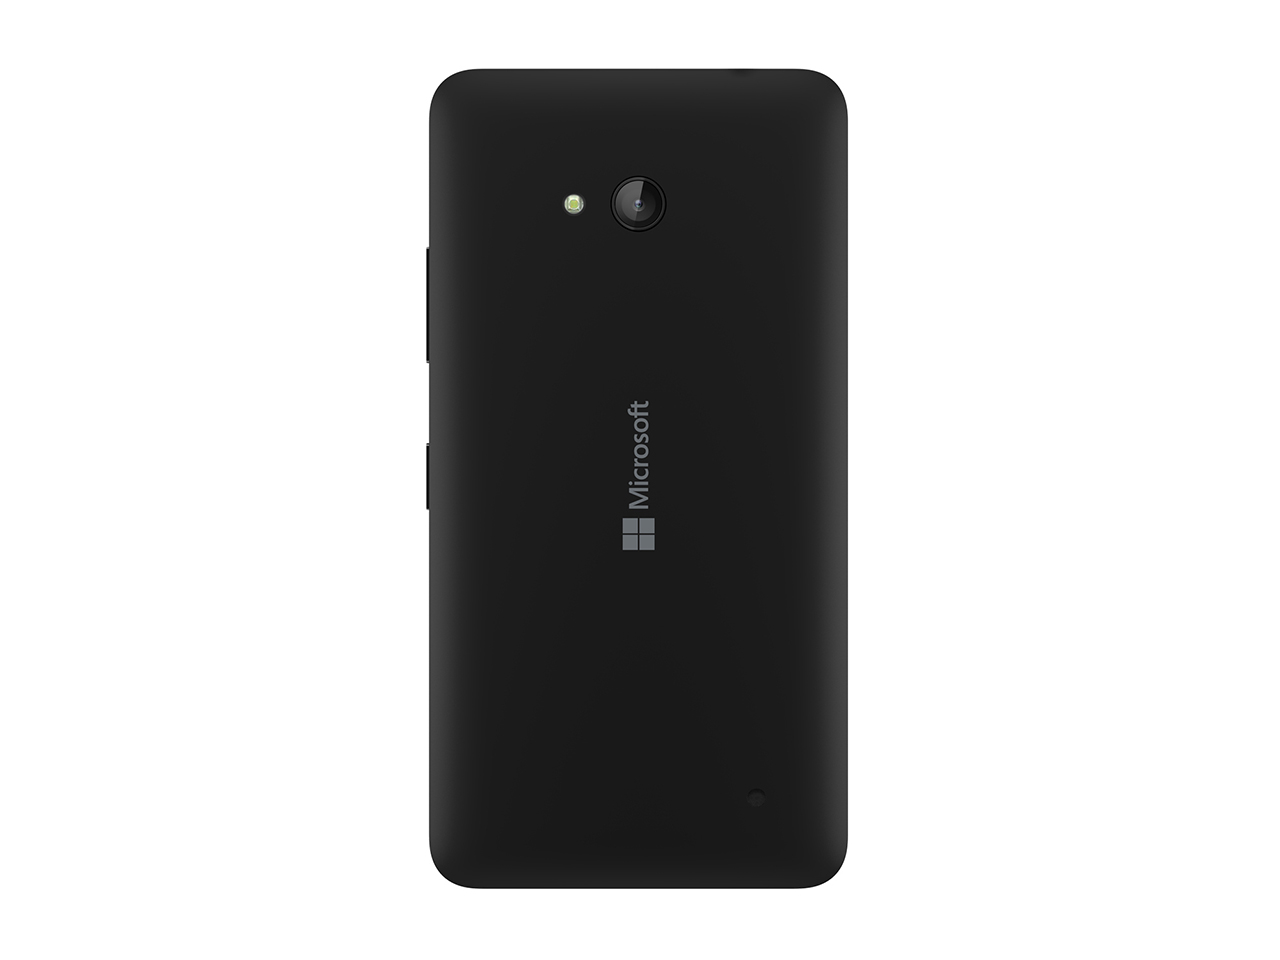 Microsoft Lumia 640 rear view